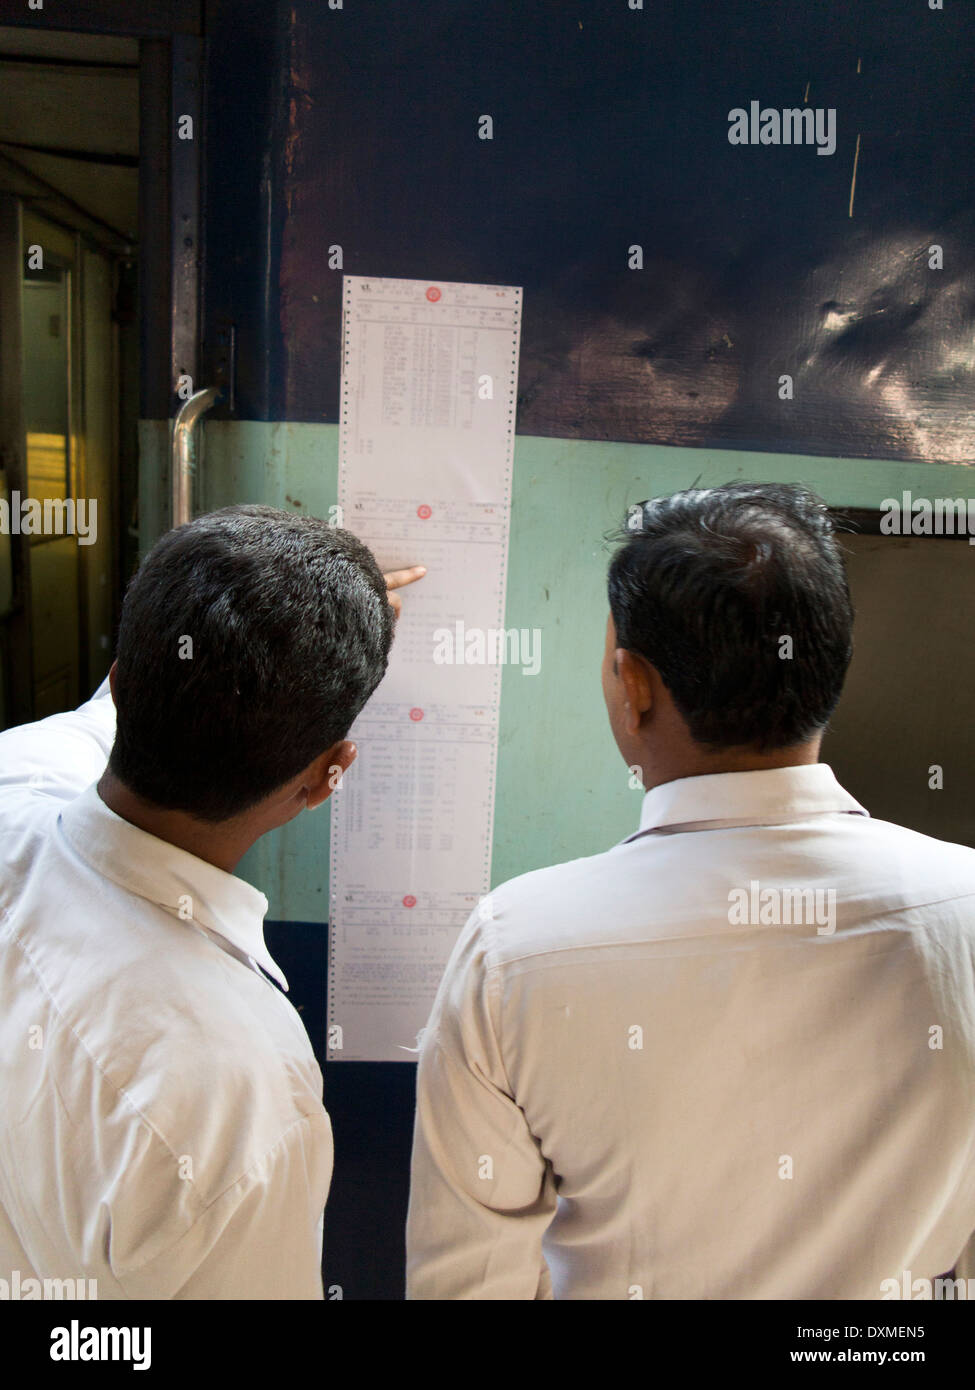 India, Rail Travel, Jammu Railway Station, two men checking reservations list pasted to side of train - Stock Image